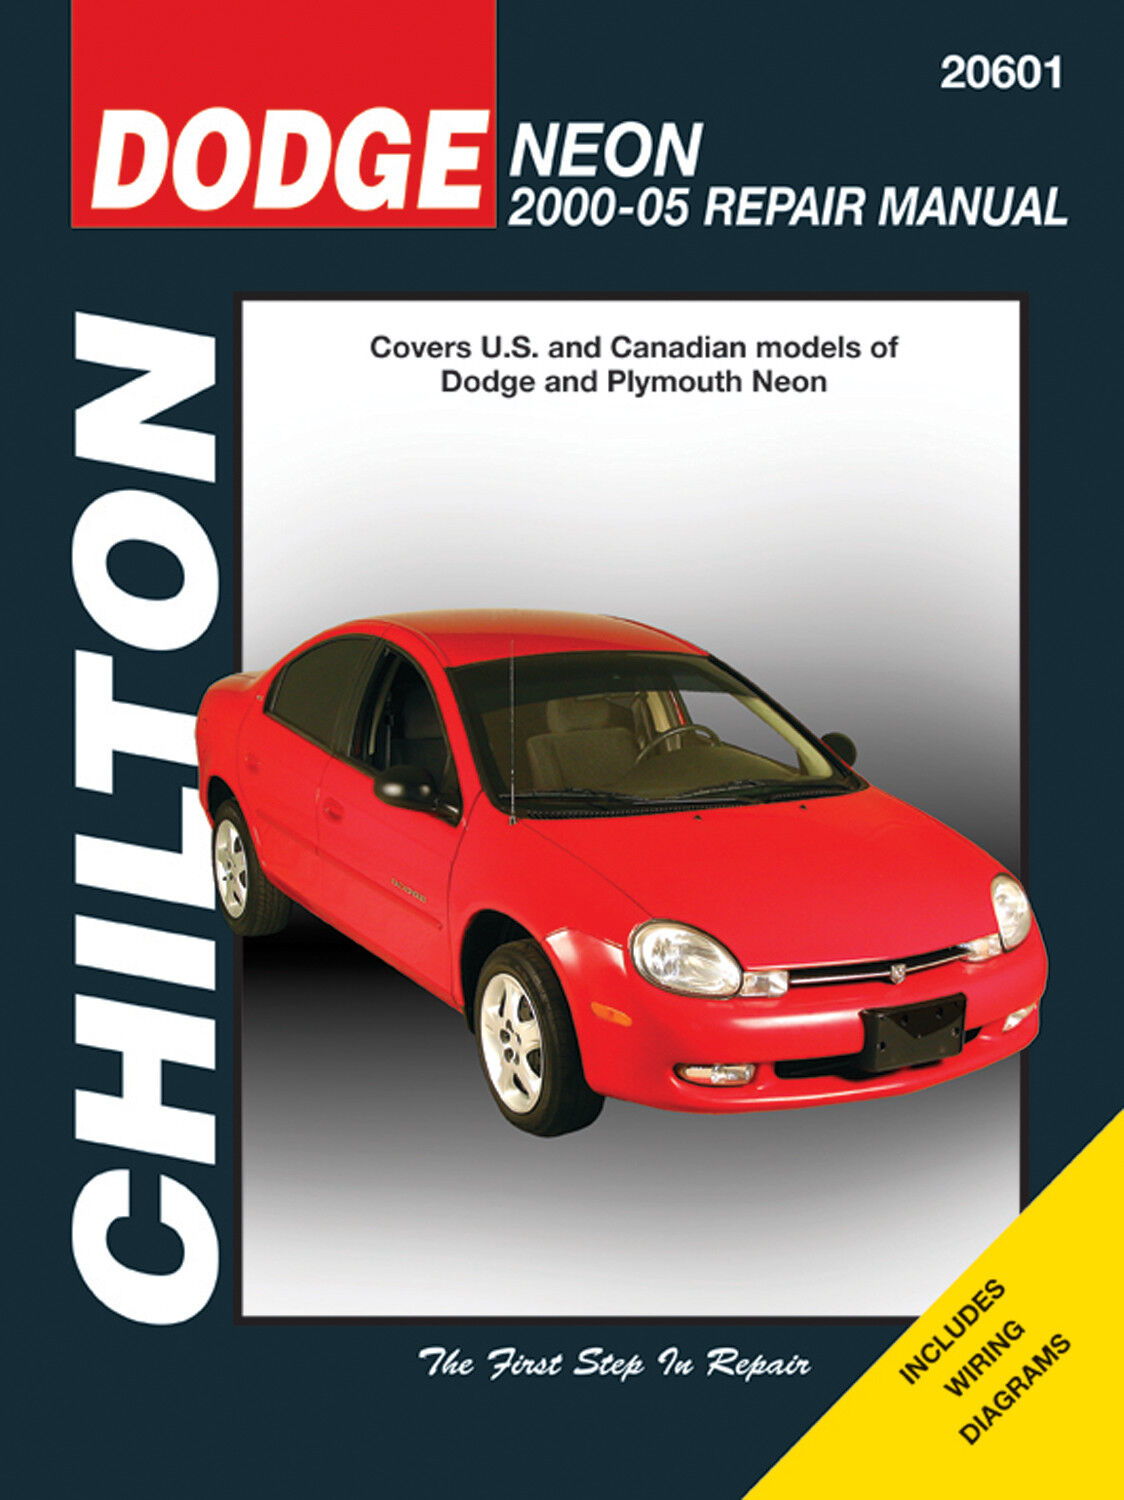 Stock photo. Stock photo; Chilton Repair Manual Dodge Neon ...